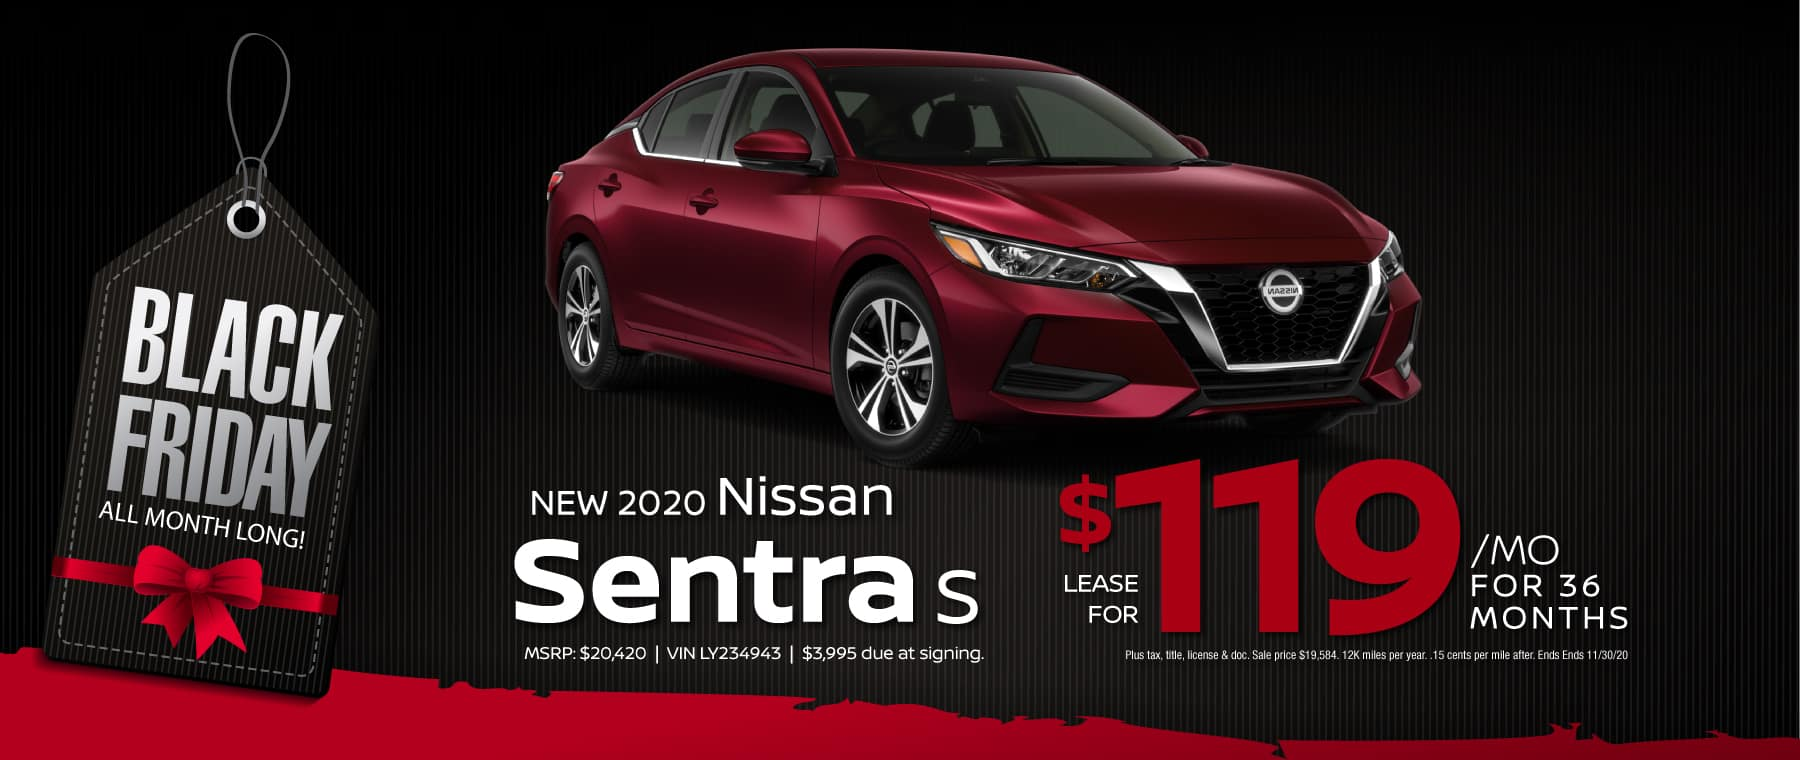 HNSC110220_lease_1800x760_Sentra